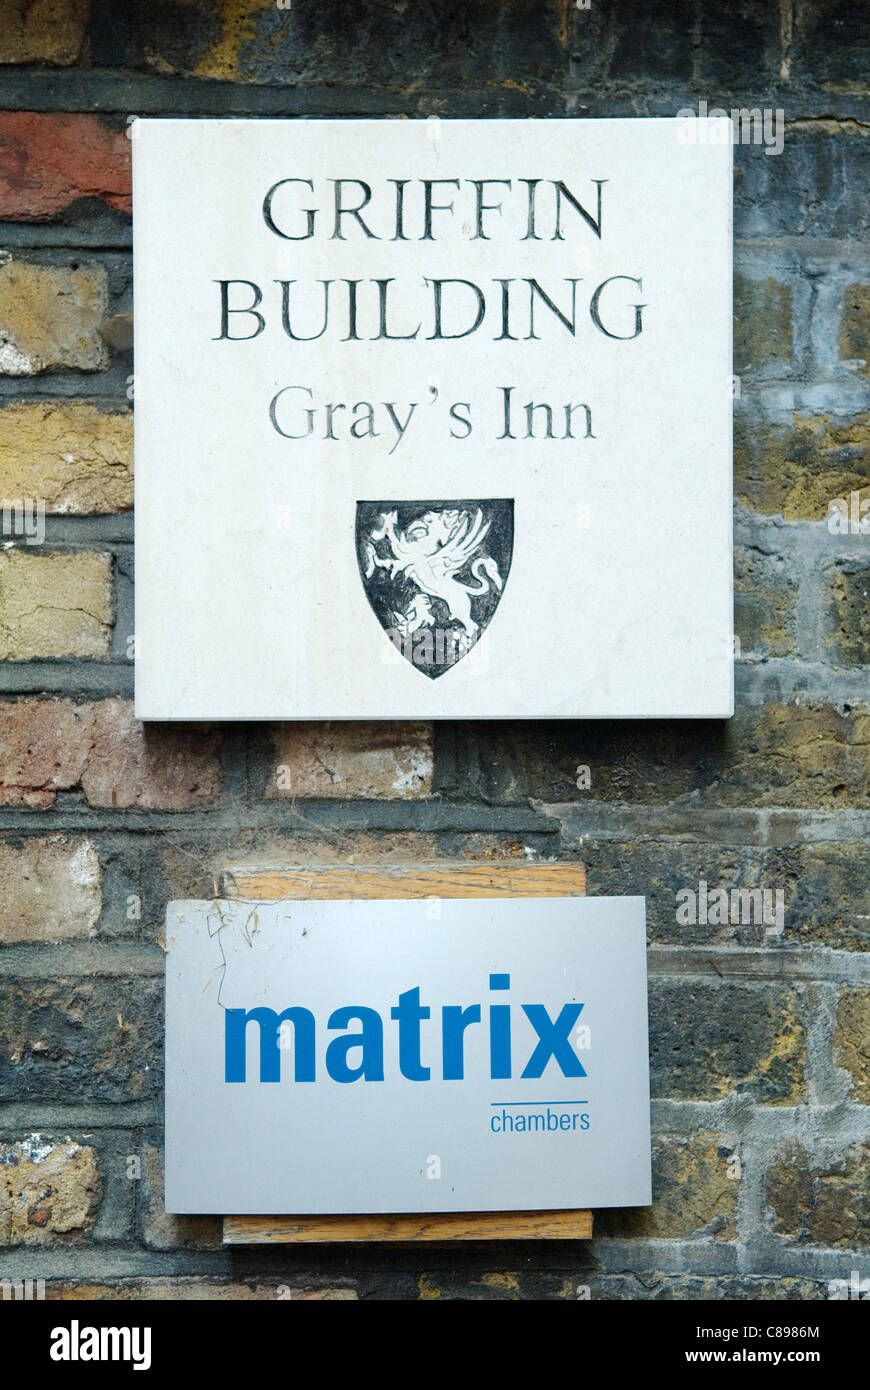 Matrix Chambers Griffin Building Grays Gray's Inn London UK  HOMER SYKES - Stock Image